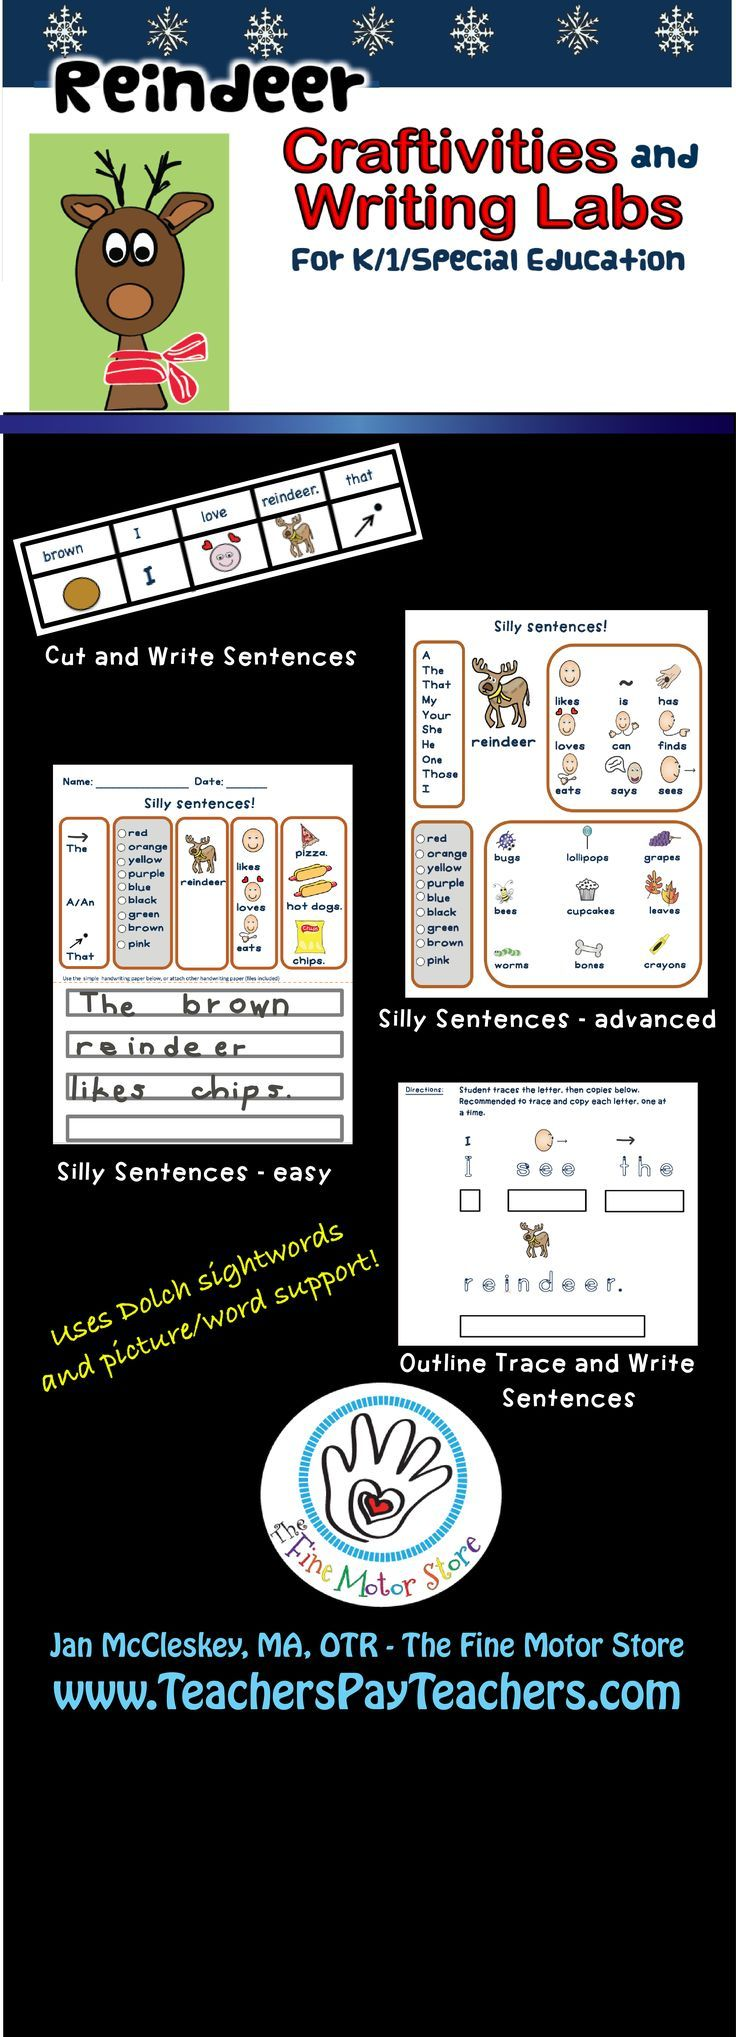 Crafts and writing labs with differentiated instruction. Perfect for kindergarten, first grade, and special education. Picture/word support and dolch sight words. Includes 2 crafts plus coloring pages and reindeer fact page. Perfect writing labs for December!